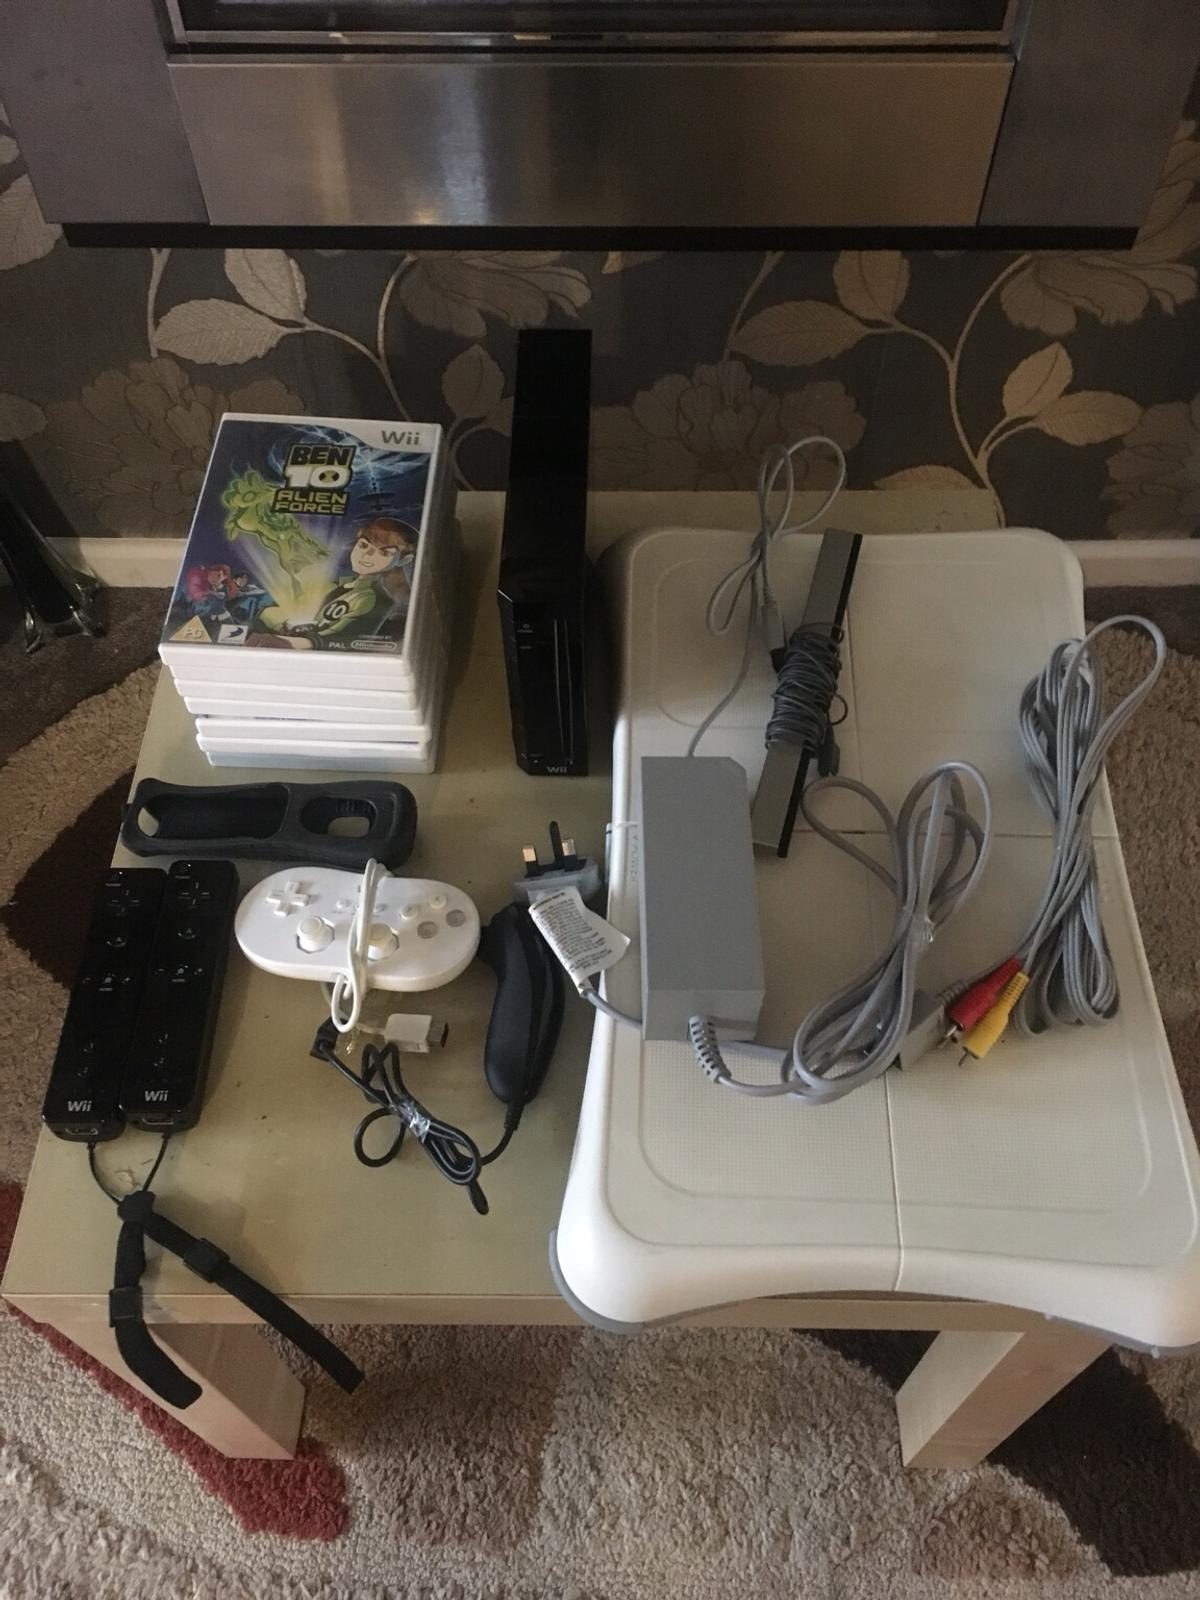 Nintendo Wii For Sale in excellent condition and perfect working order can be seen working before purchase.  What you get- All leads 2 remotes 1 nunchuck 1 hand held controller Wii board 7 games  Any questions please ask  £55  Can deliver for a small fee  Thanks  07904653054